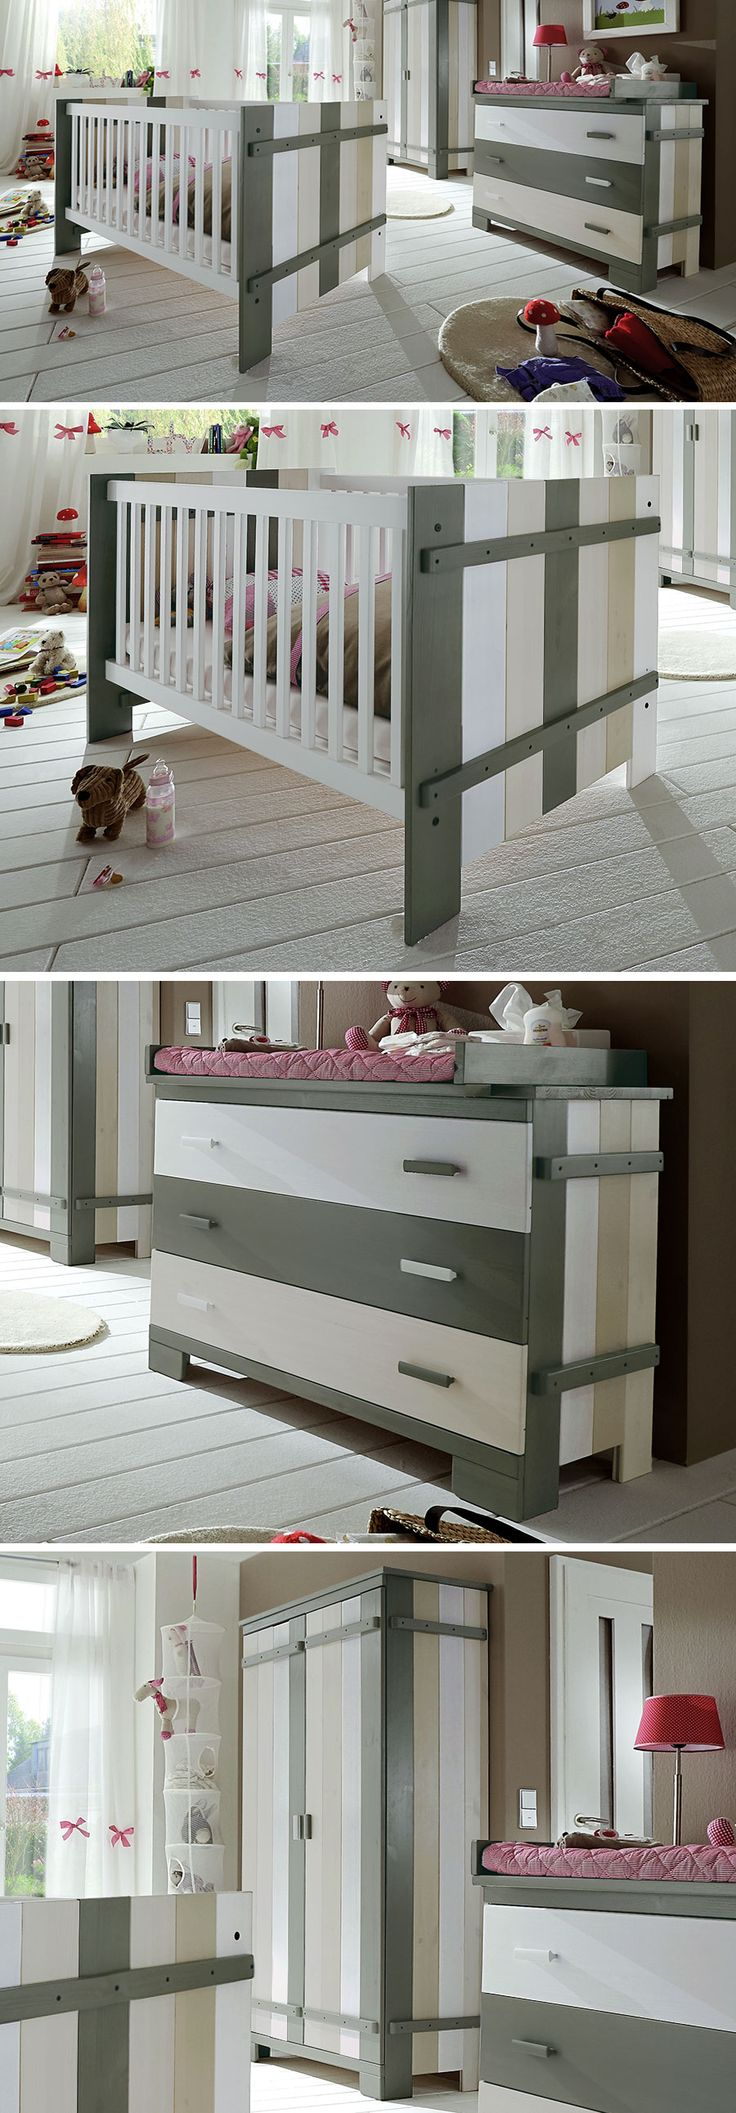 ber ideen zu babybett massivholz auf pinterest. Black Bedroom Furniture Sets. Home Design Ideas